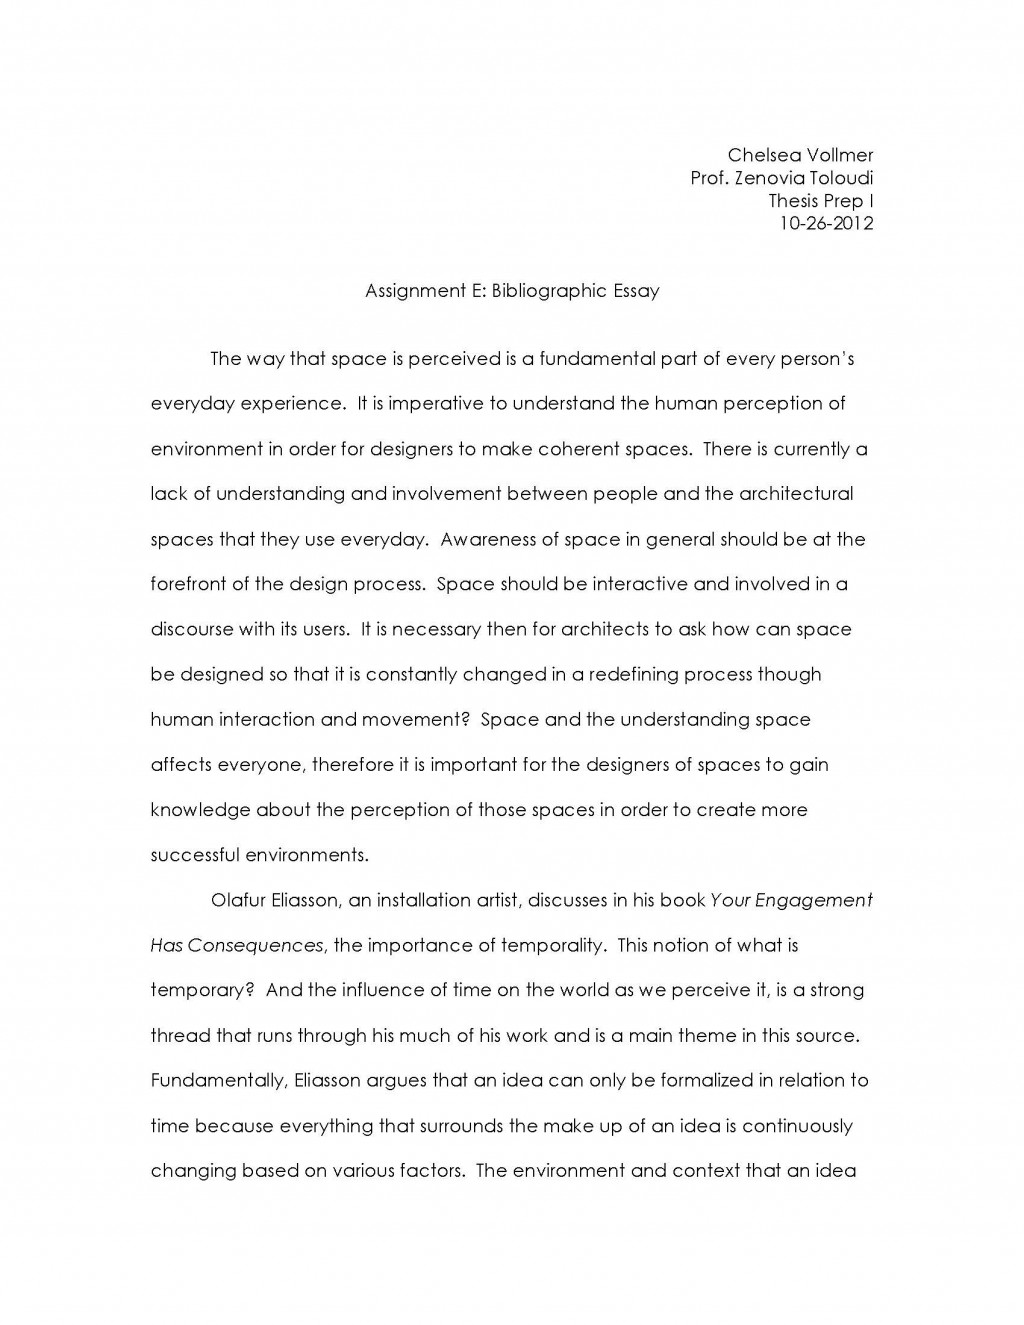 018 Assignment E Page 12 Essay Example Satire On School Dress Beautiful Code Large